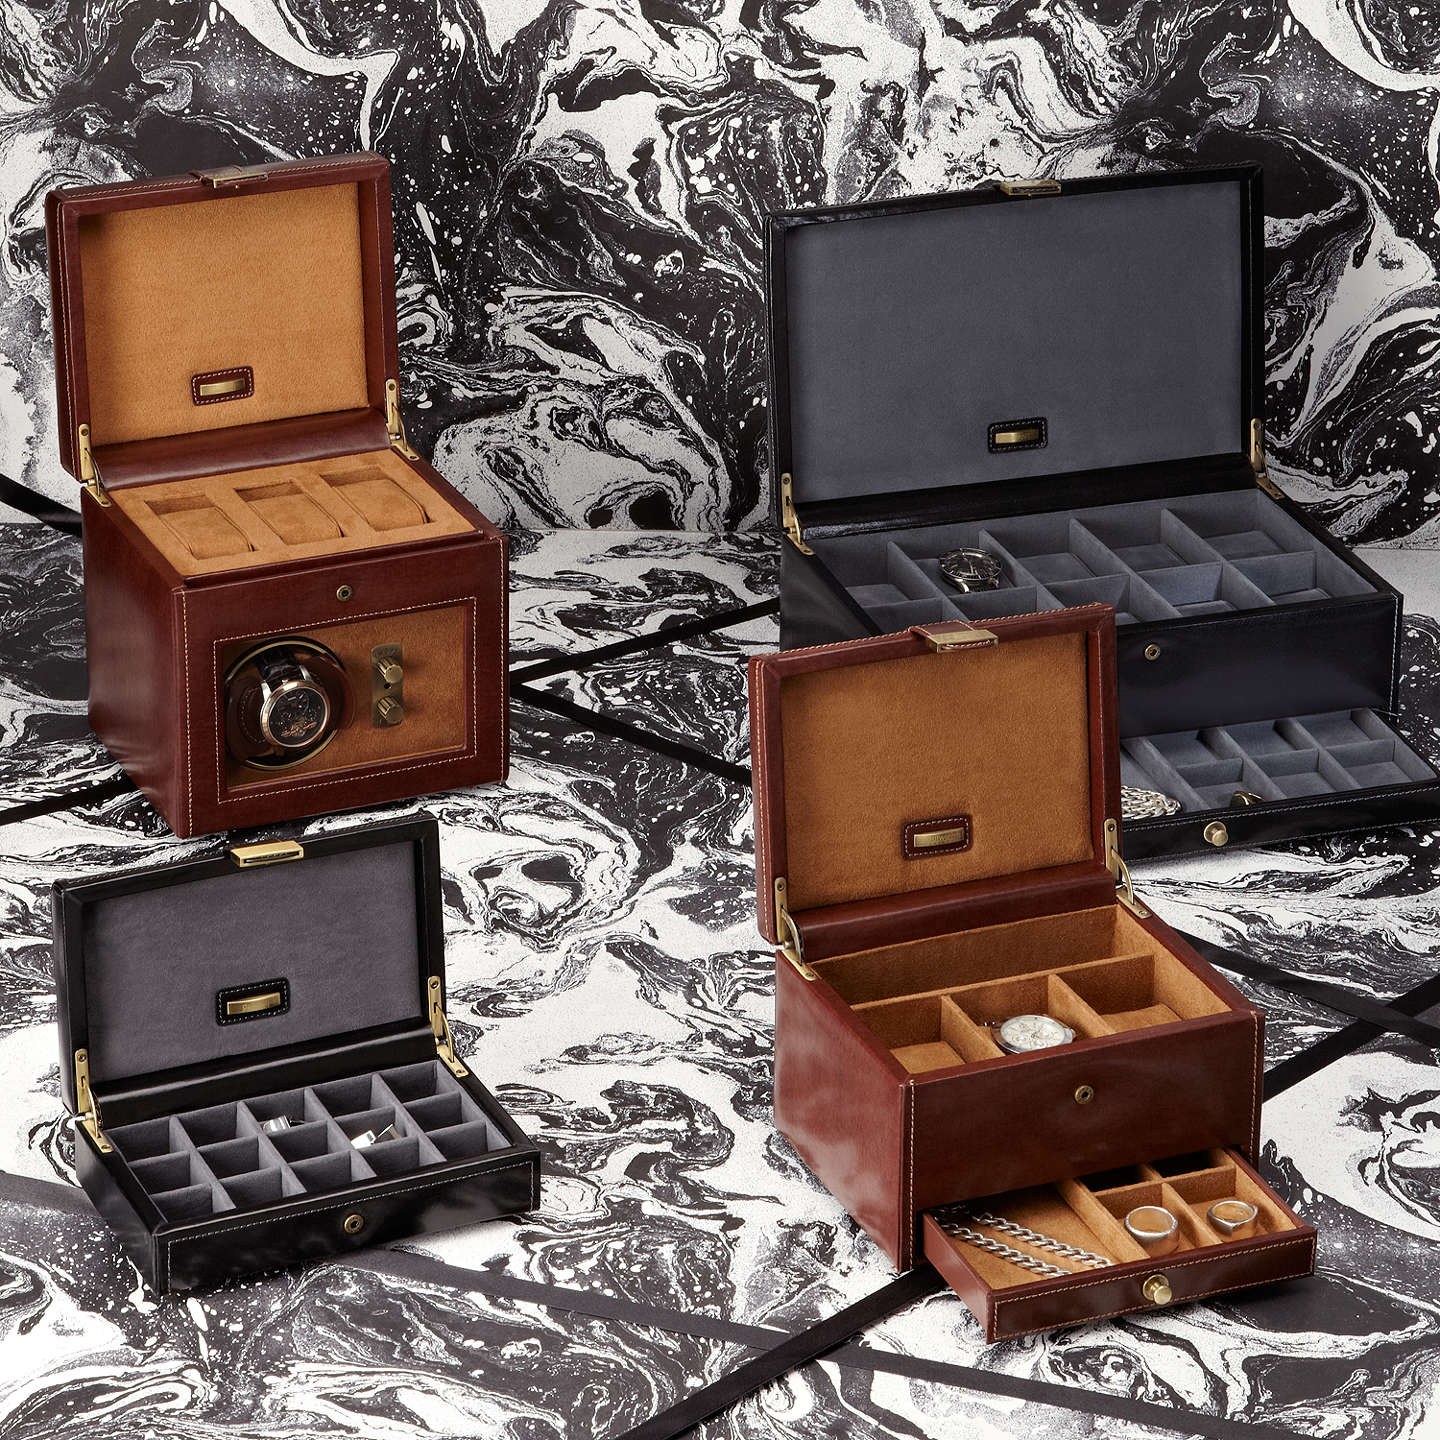 BuyDulwich Designs Heritage 10-section Watch Box, Brown Online at johnlewis.com